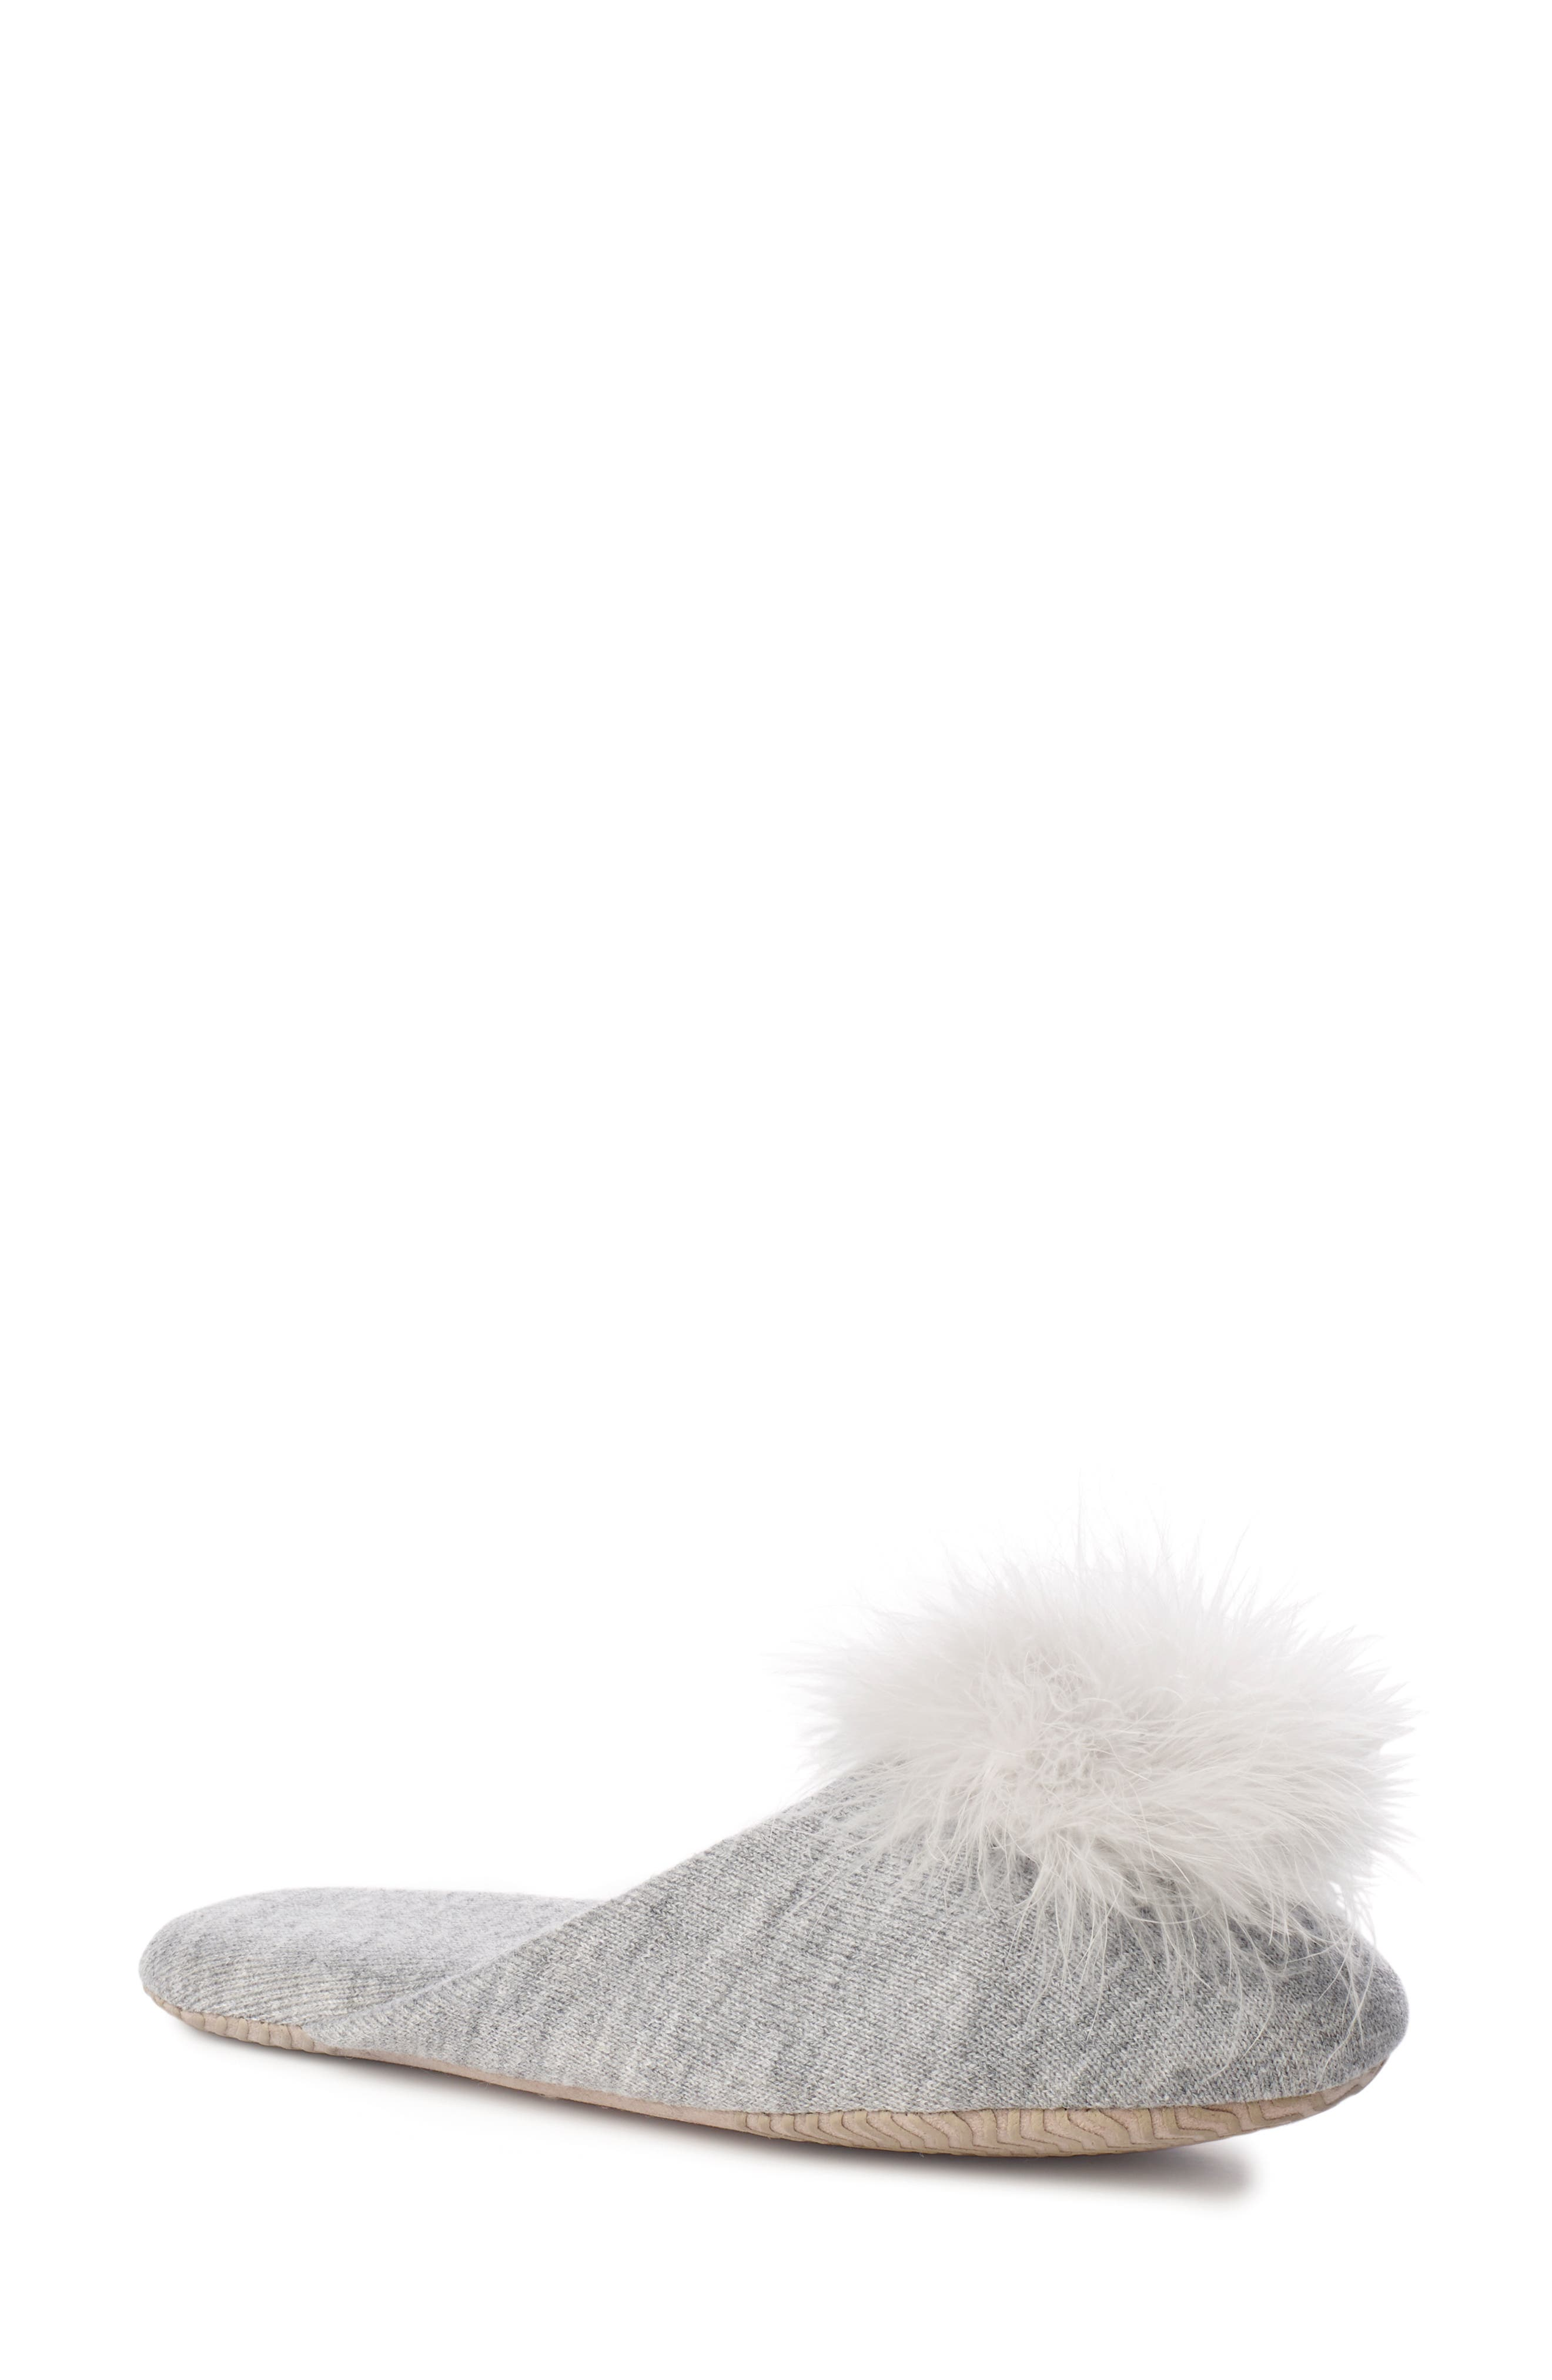 Feather Pompom Mule Slipper,                             Main thumbnail 1, color,                             PALE GREY HEATHER